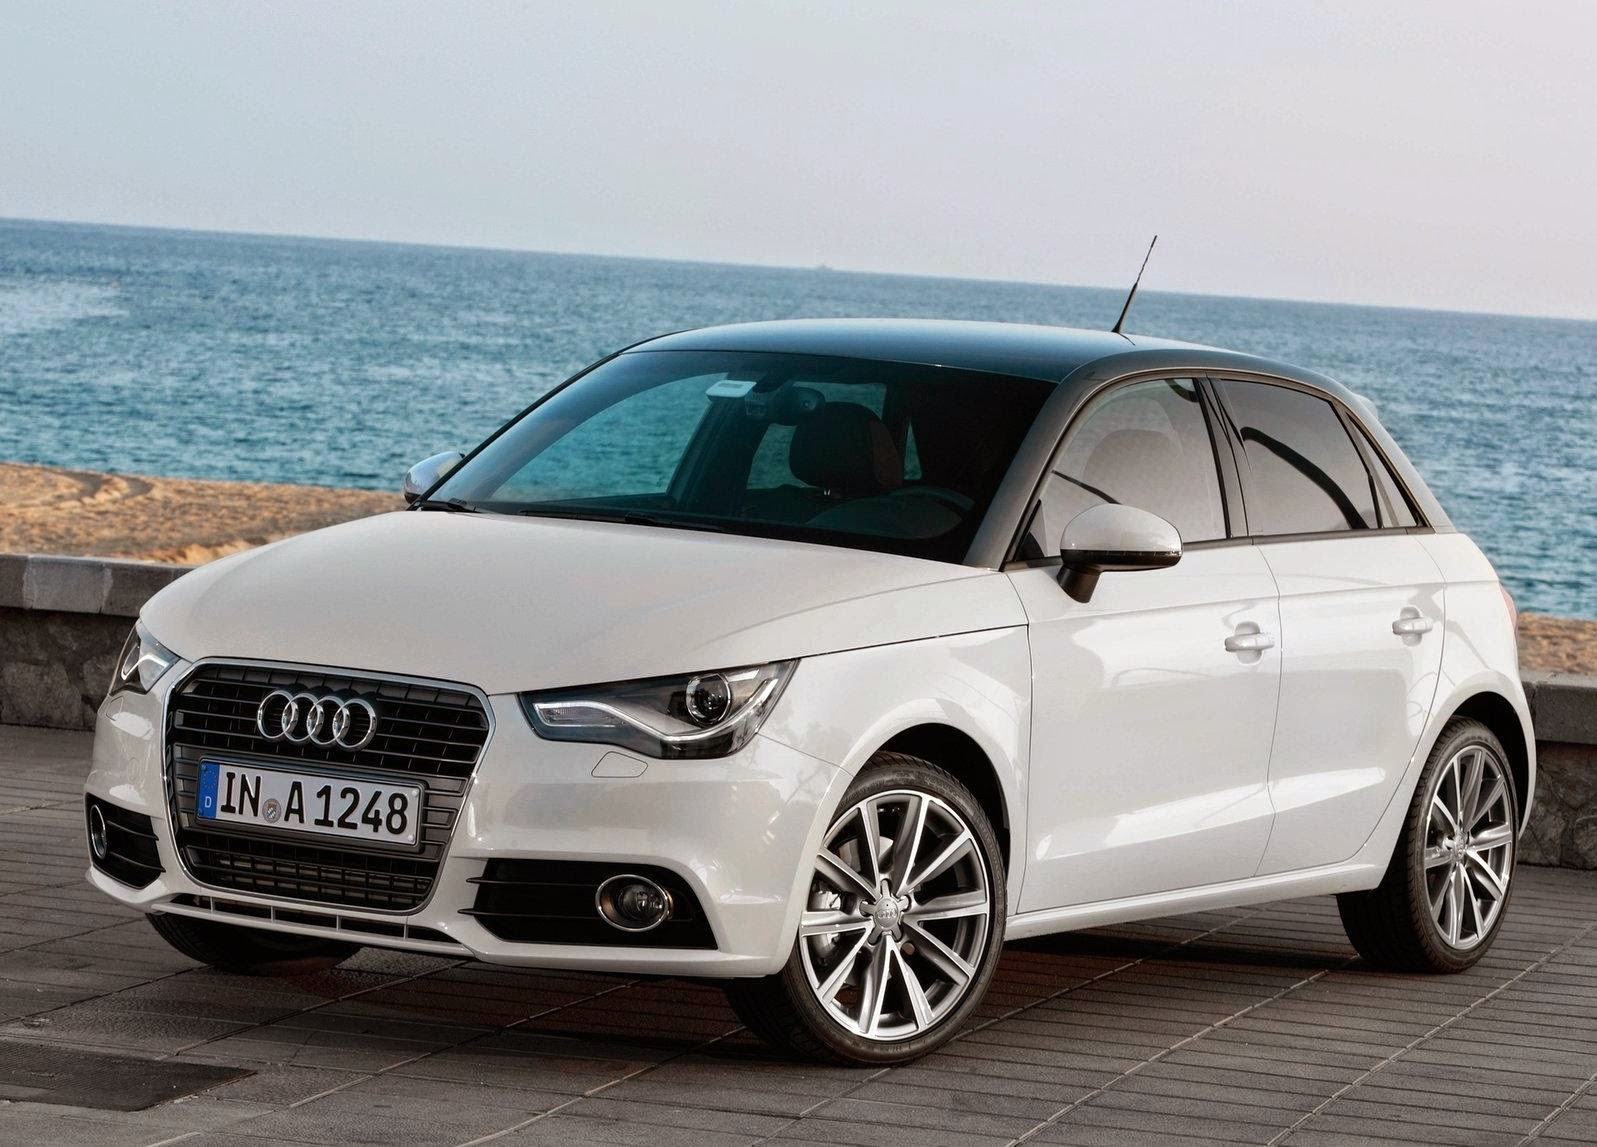 Audi A1 Sportback 2012 Widescreen Wallpaper